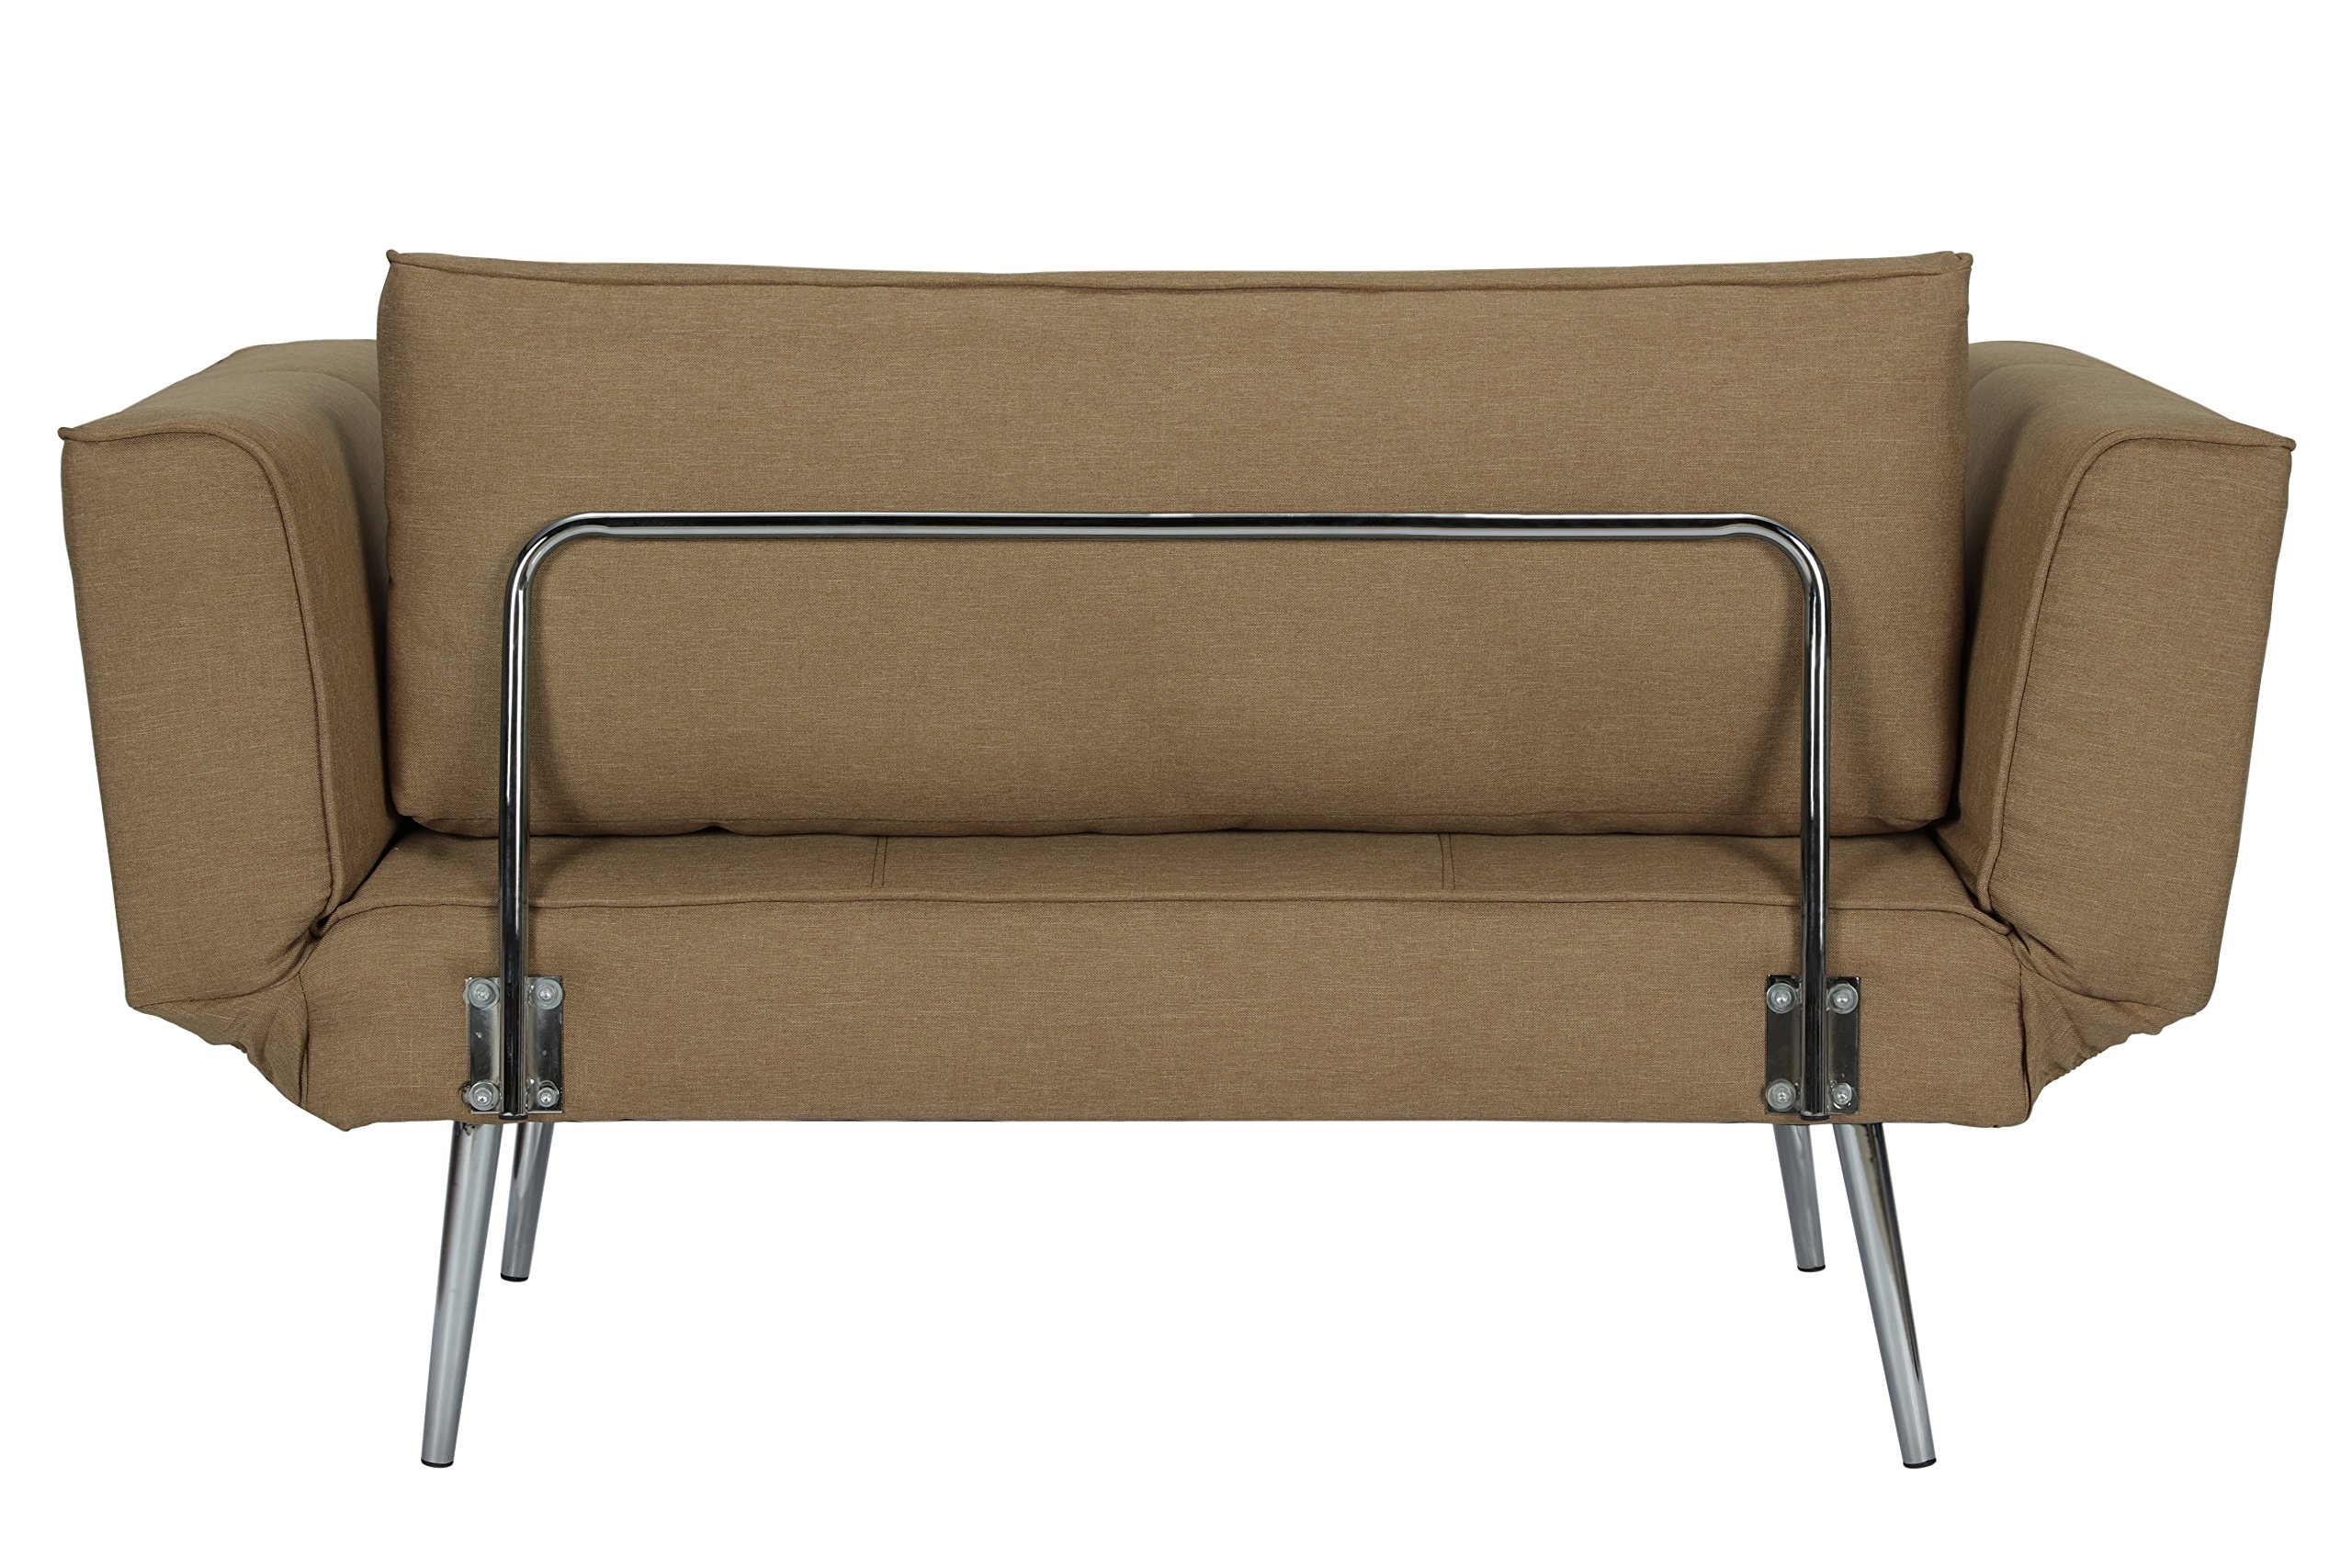 DHP Euro Sofa Futon Loveseat with Chrome Legs and Adjustable Armrests - Tan by DHP (Image #7)